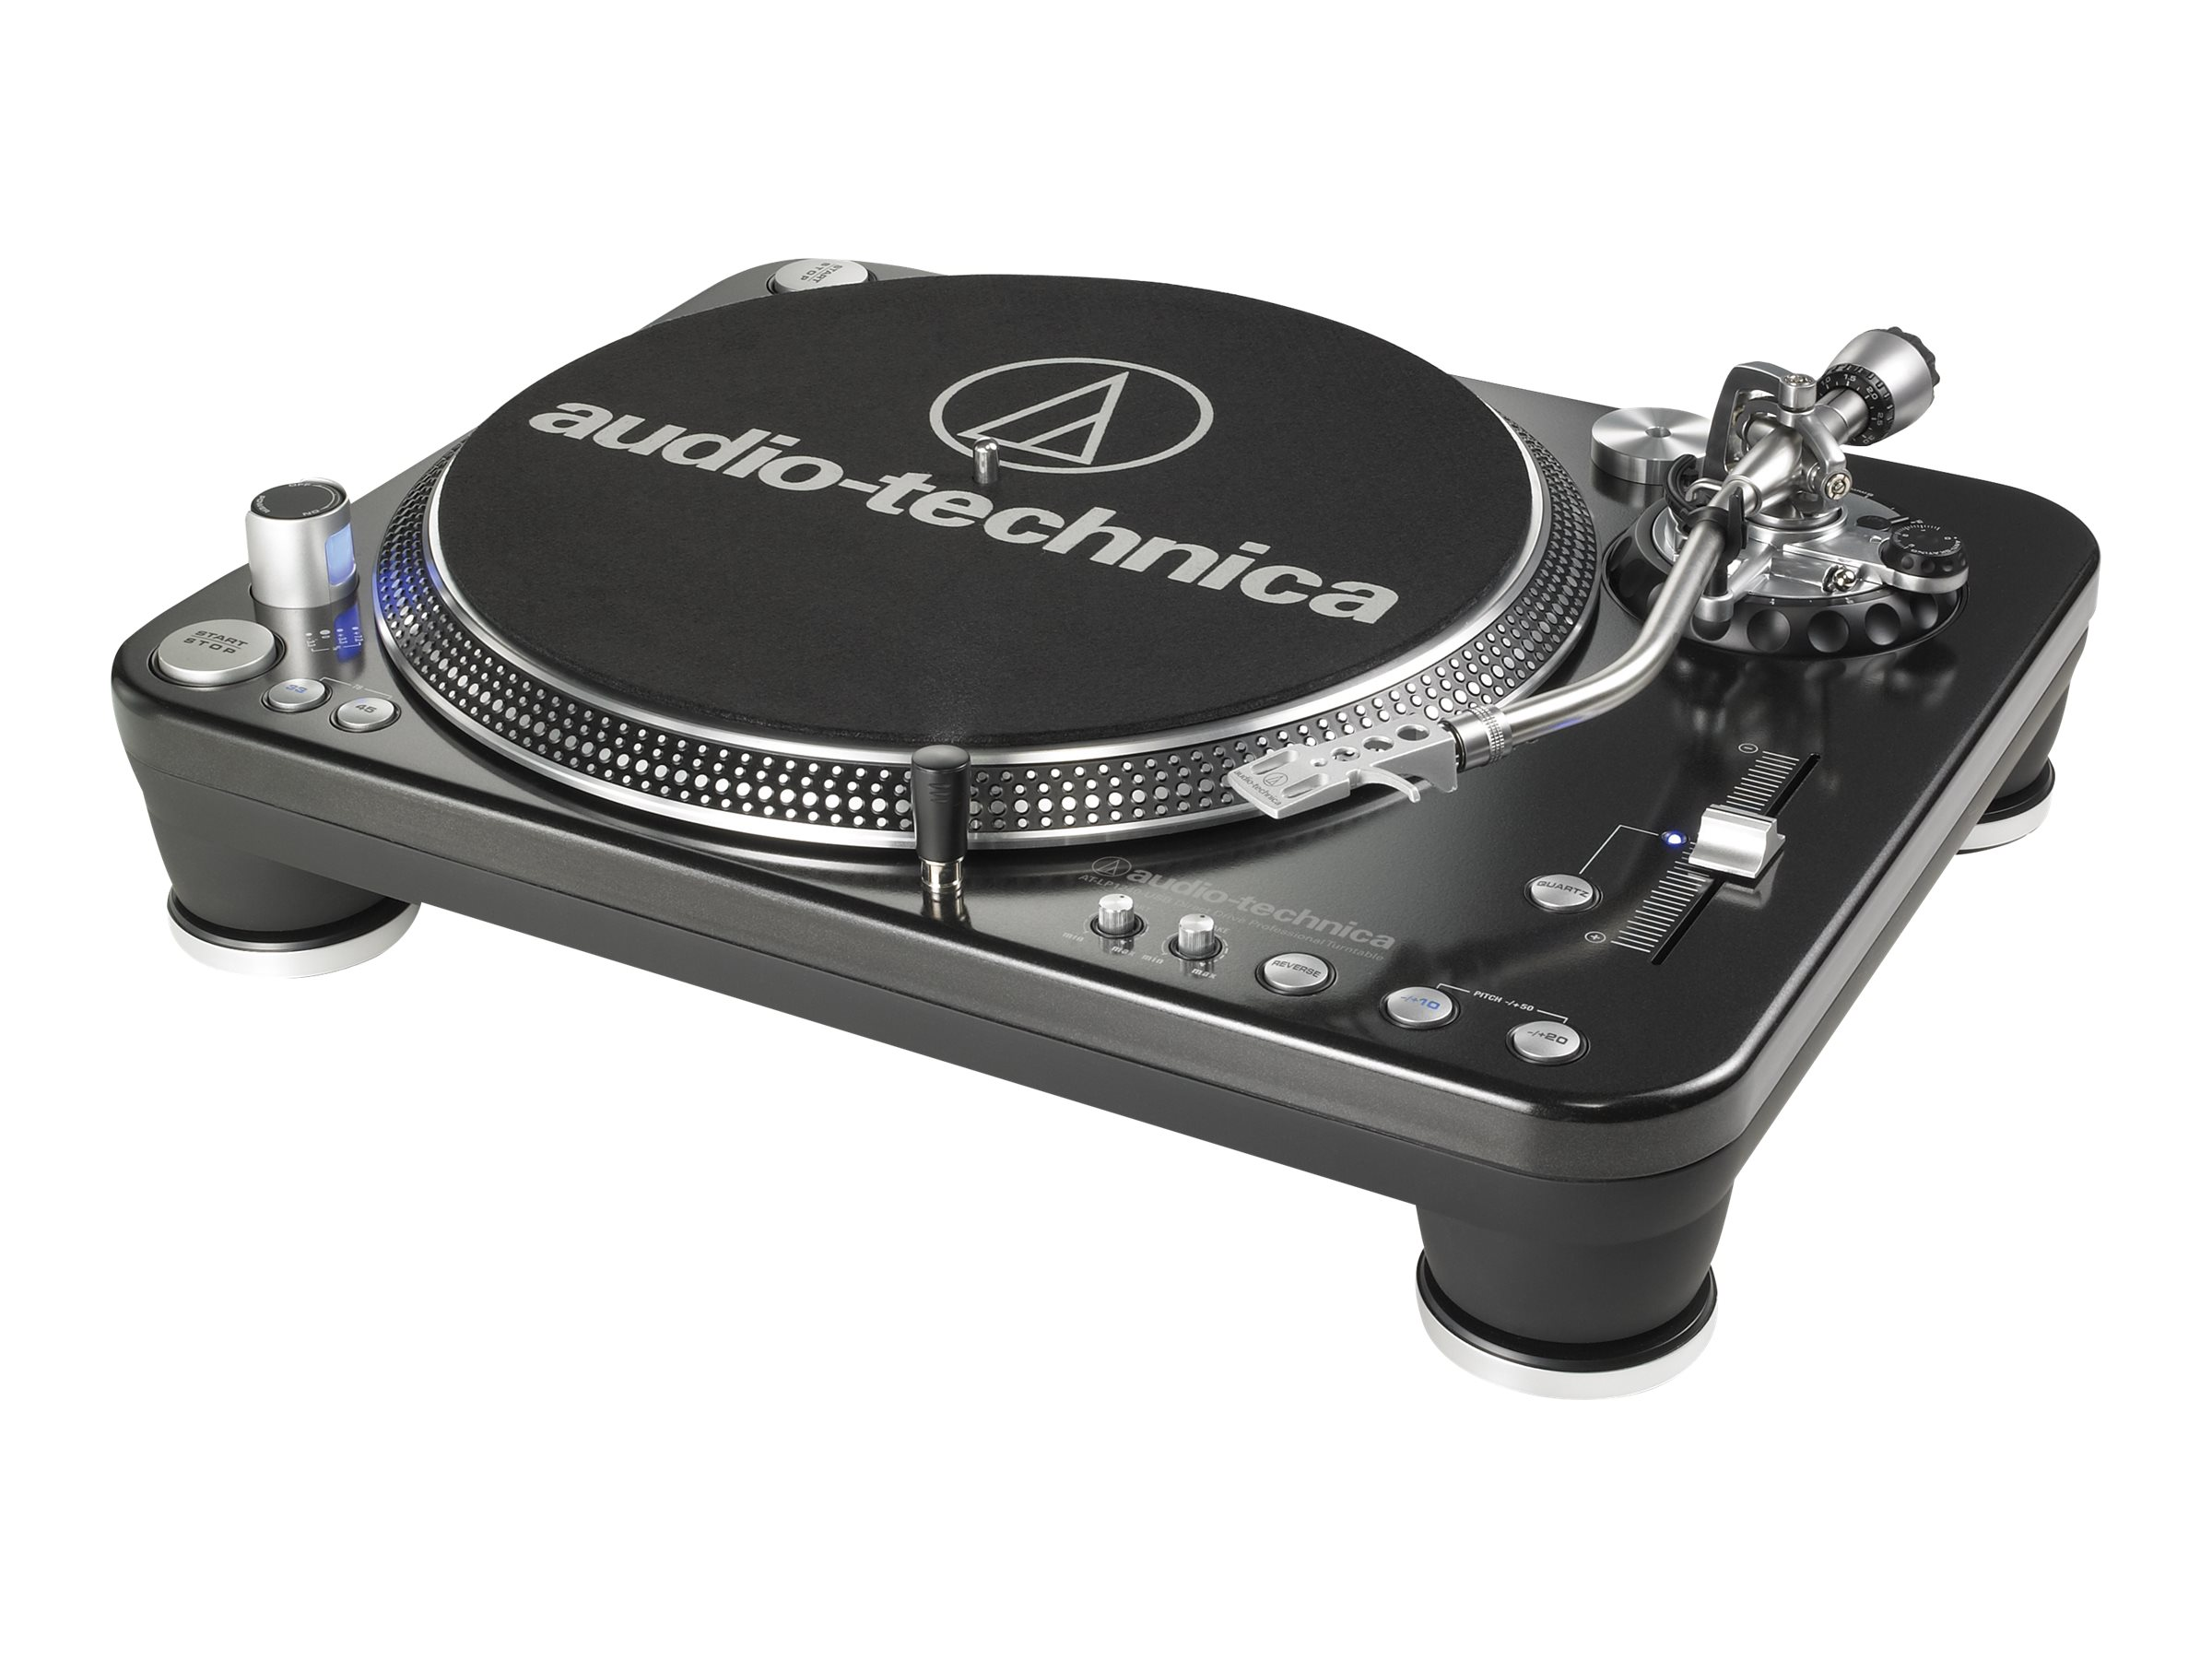 Audio-Technica Direct Drive DJ Turntable, AT-LP1240-USB, 31189838, Stereo Components